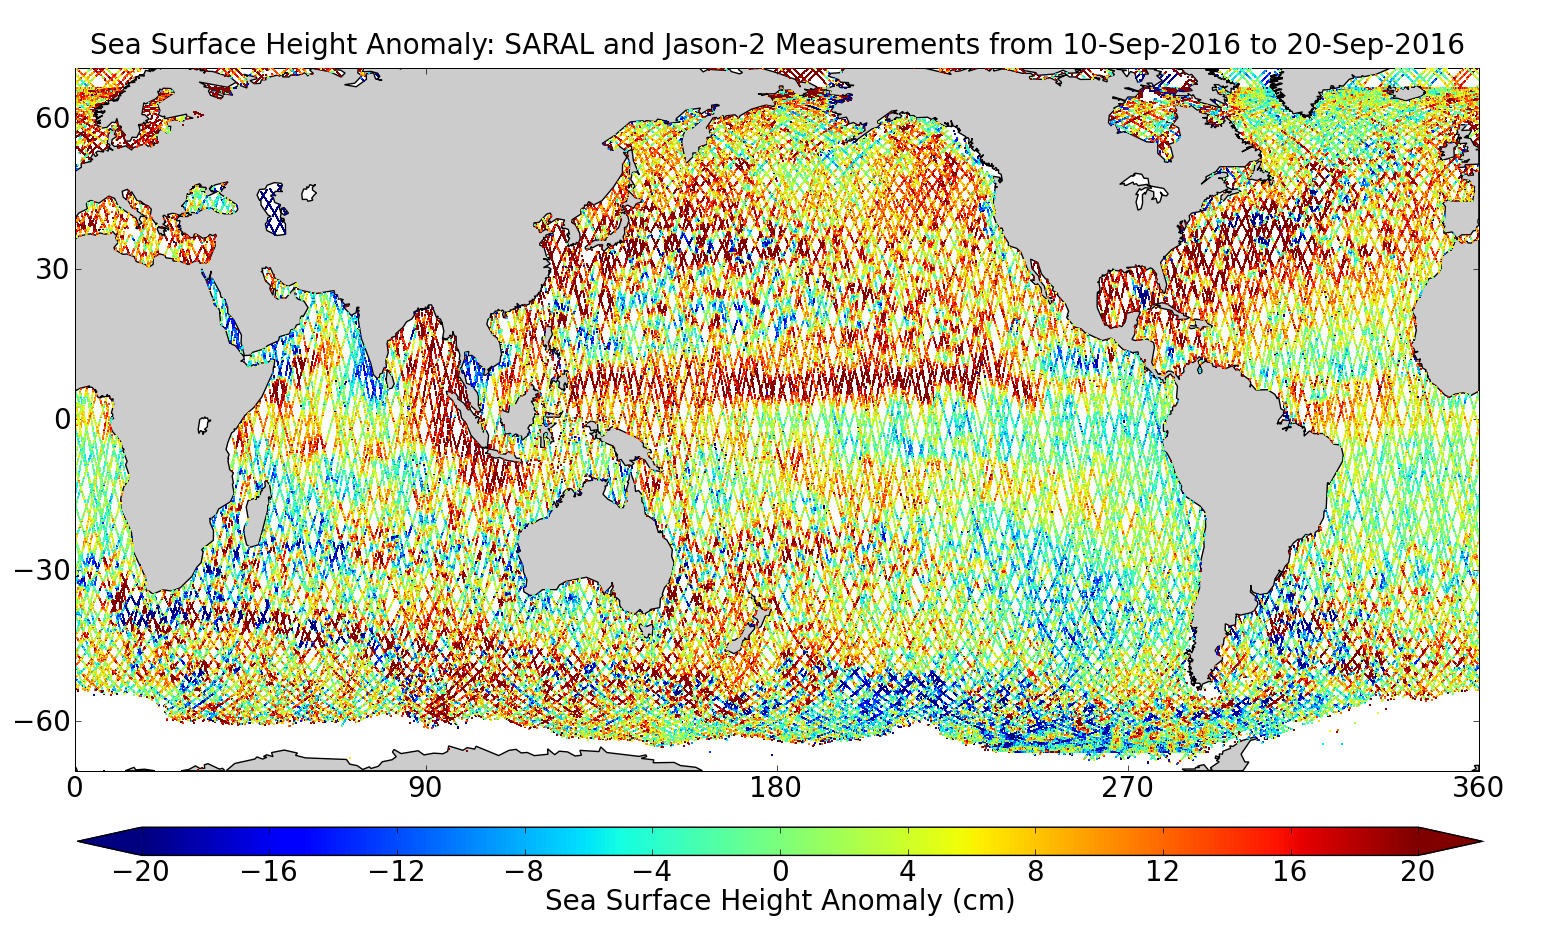 Sea Surface Height Anomaly: SARAL and Jason-2 Measurements from 10-Sep-2016 to 20-Sep-2016